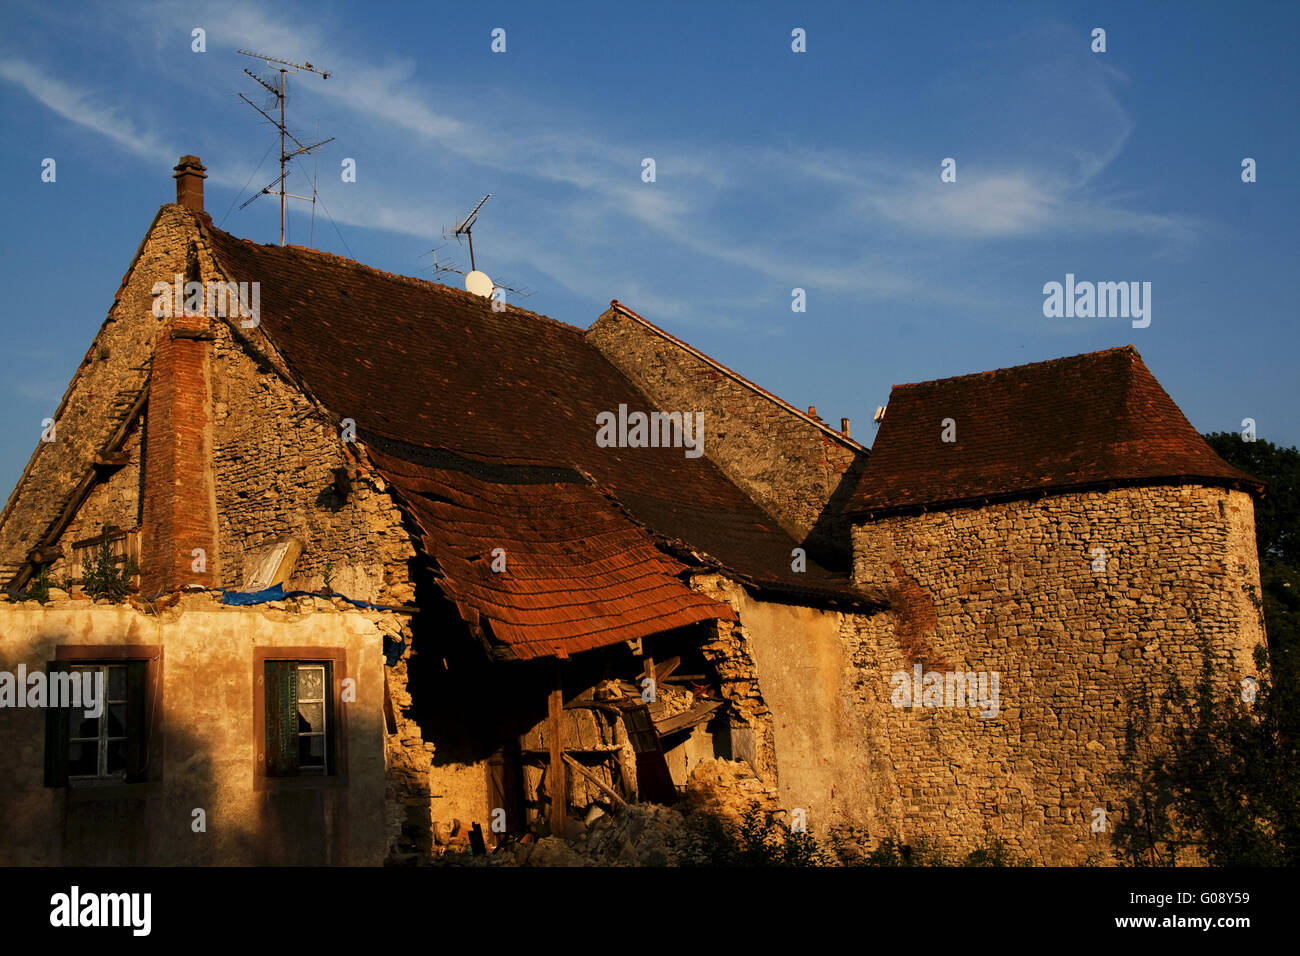 Old town wall, Fénétrange, Lorraine, France - Stock Image